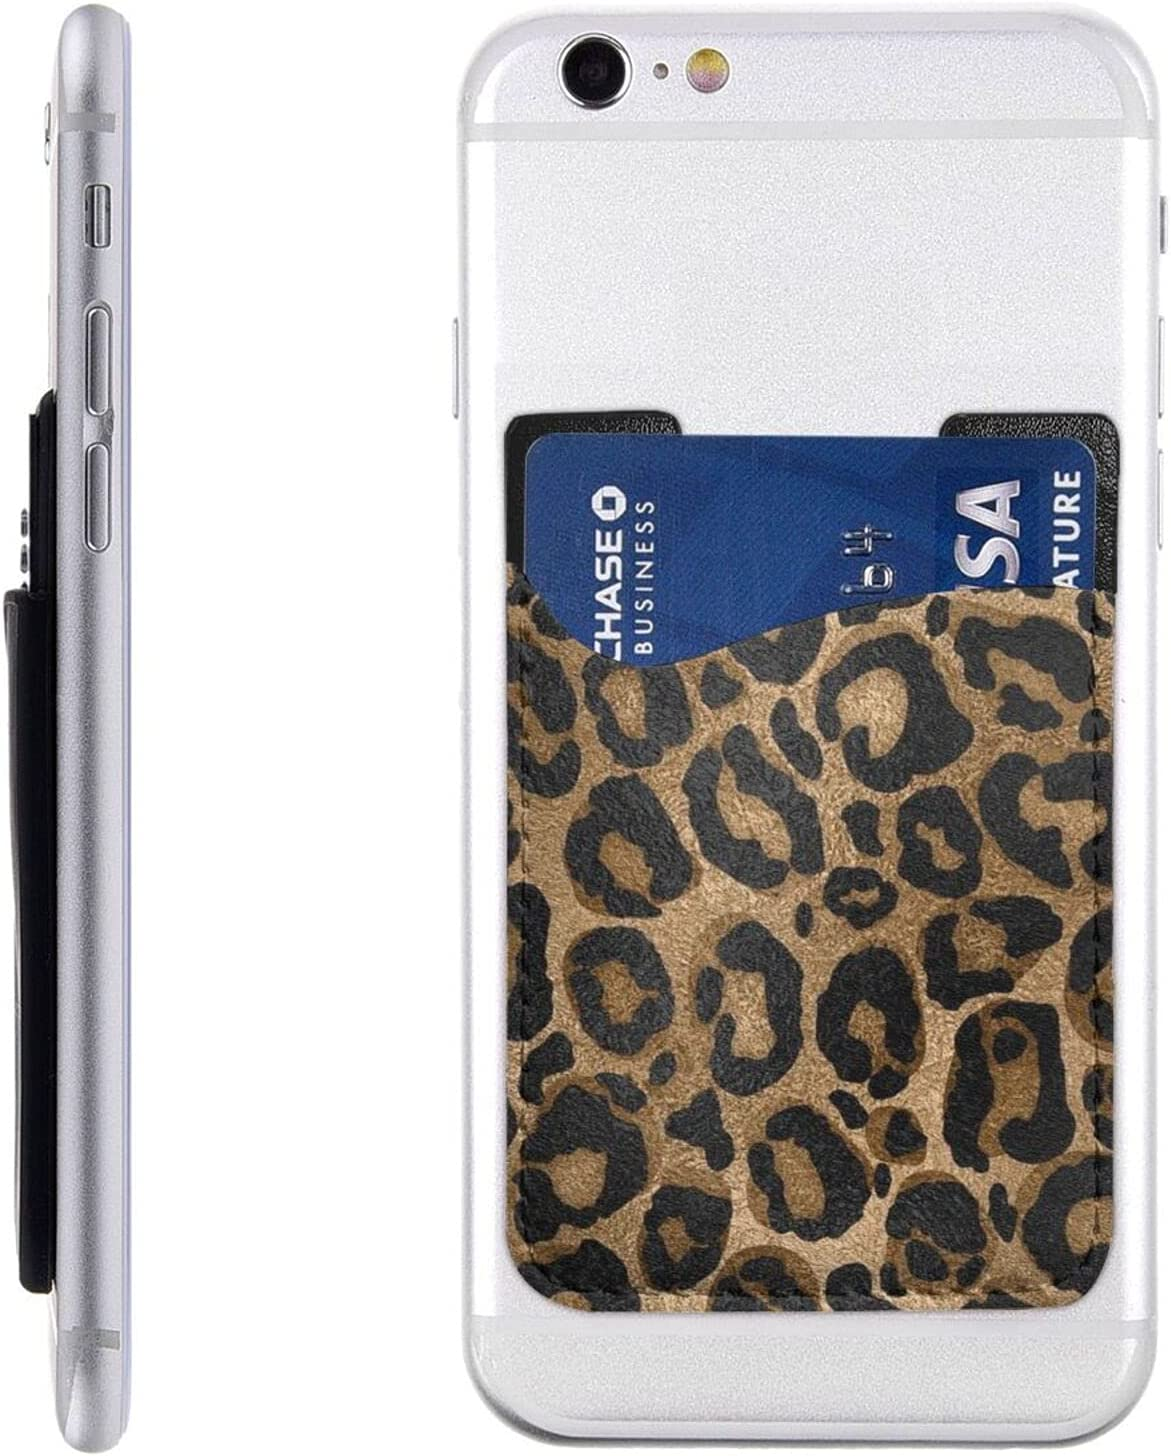 Black Gold Leopard Phone Card Holder,Pu Leather Credit Card Wallet Phone Case Pouch Sleeve Pocket for All Smartphones